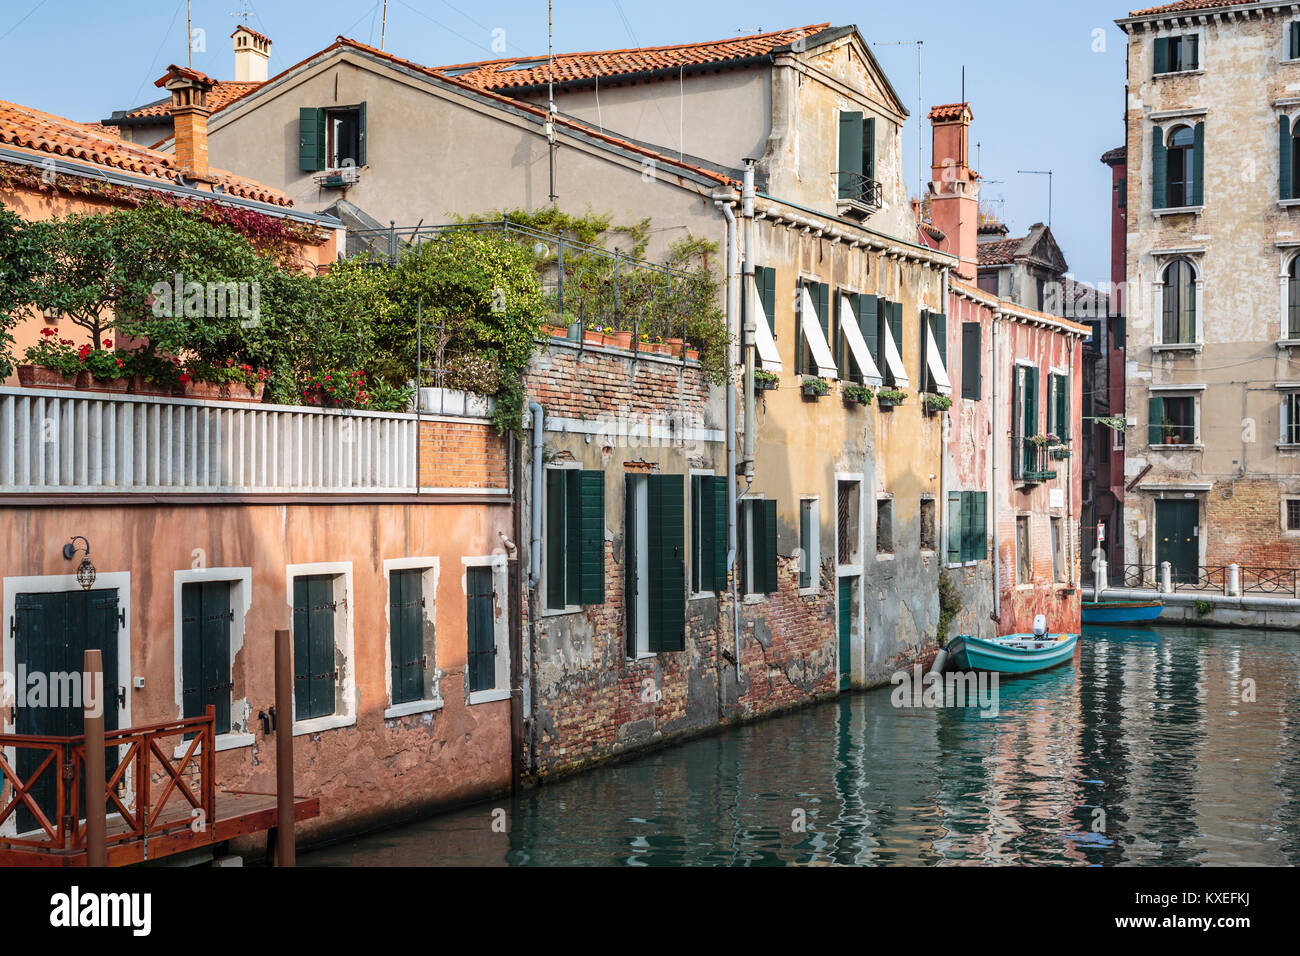 A scene along the Grand Canal in Veneto, Venice, Italy, Europe, - Stock Image